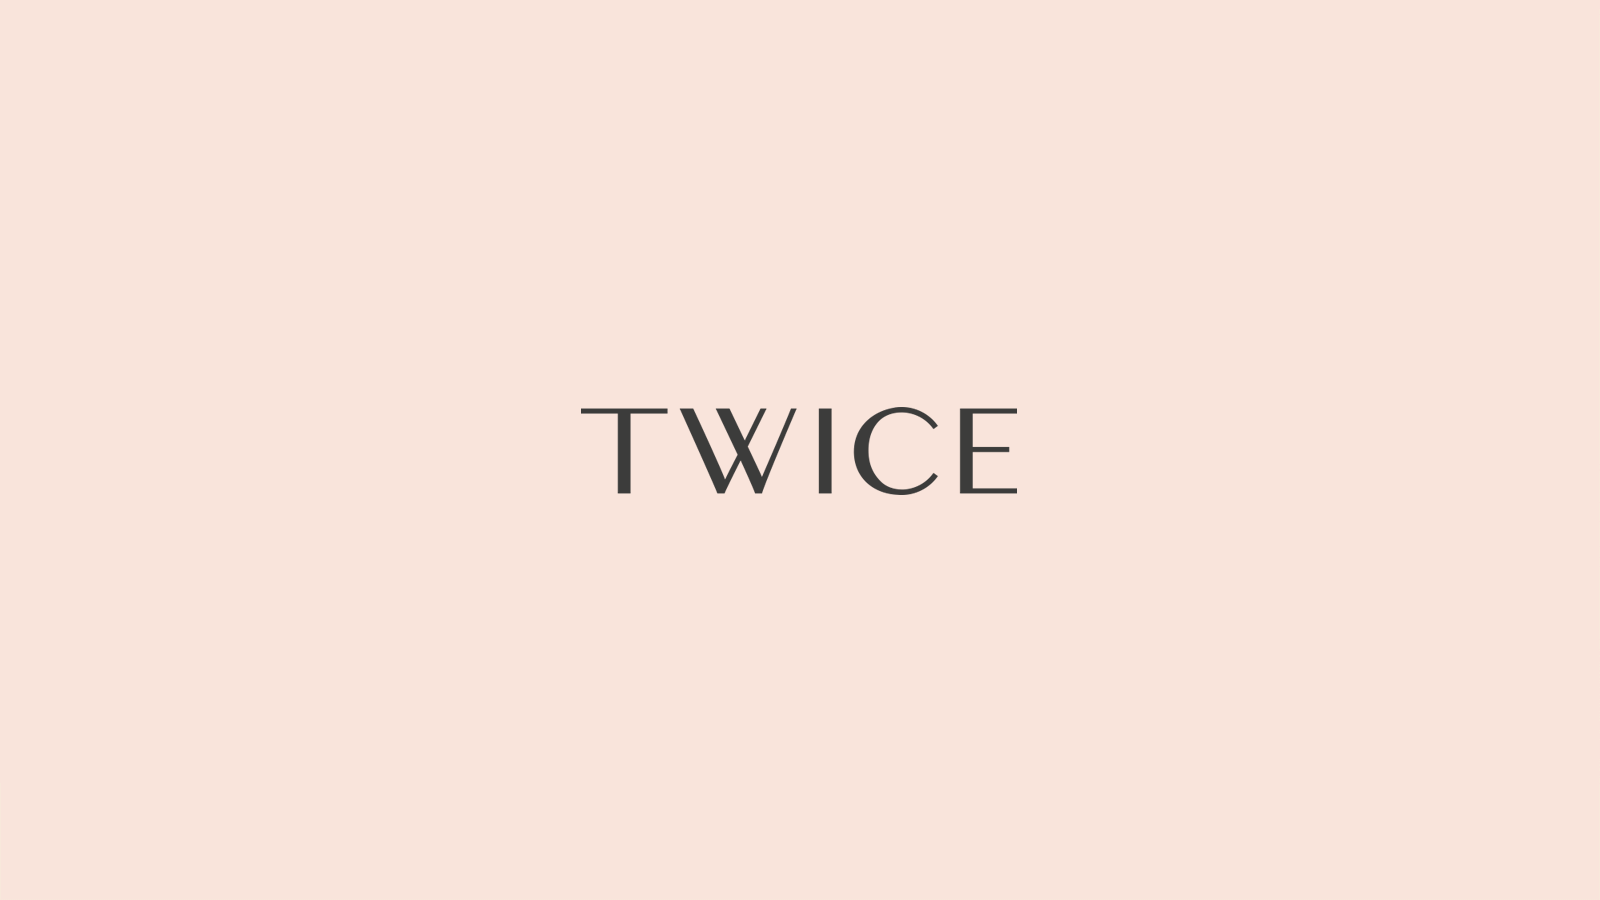 Twice Fashion